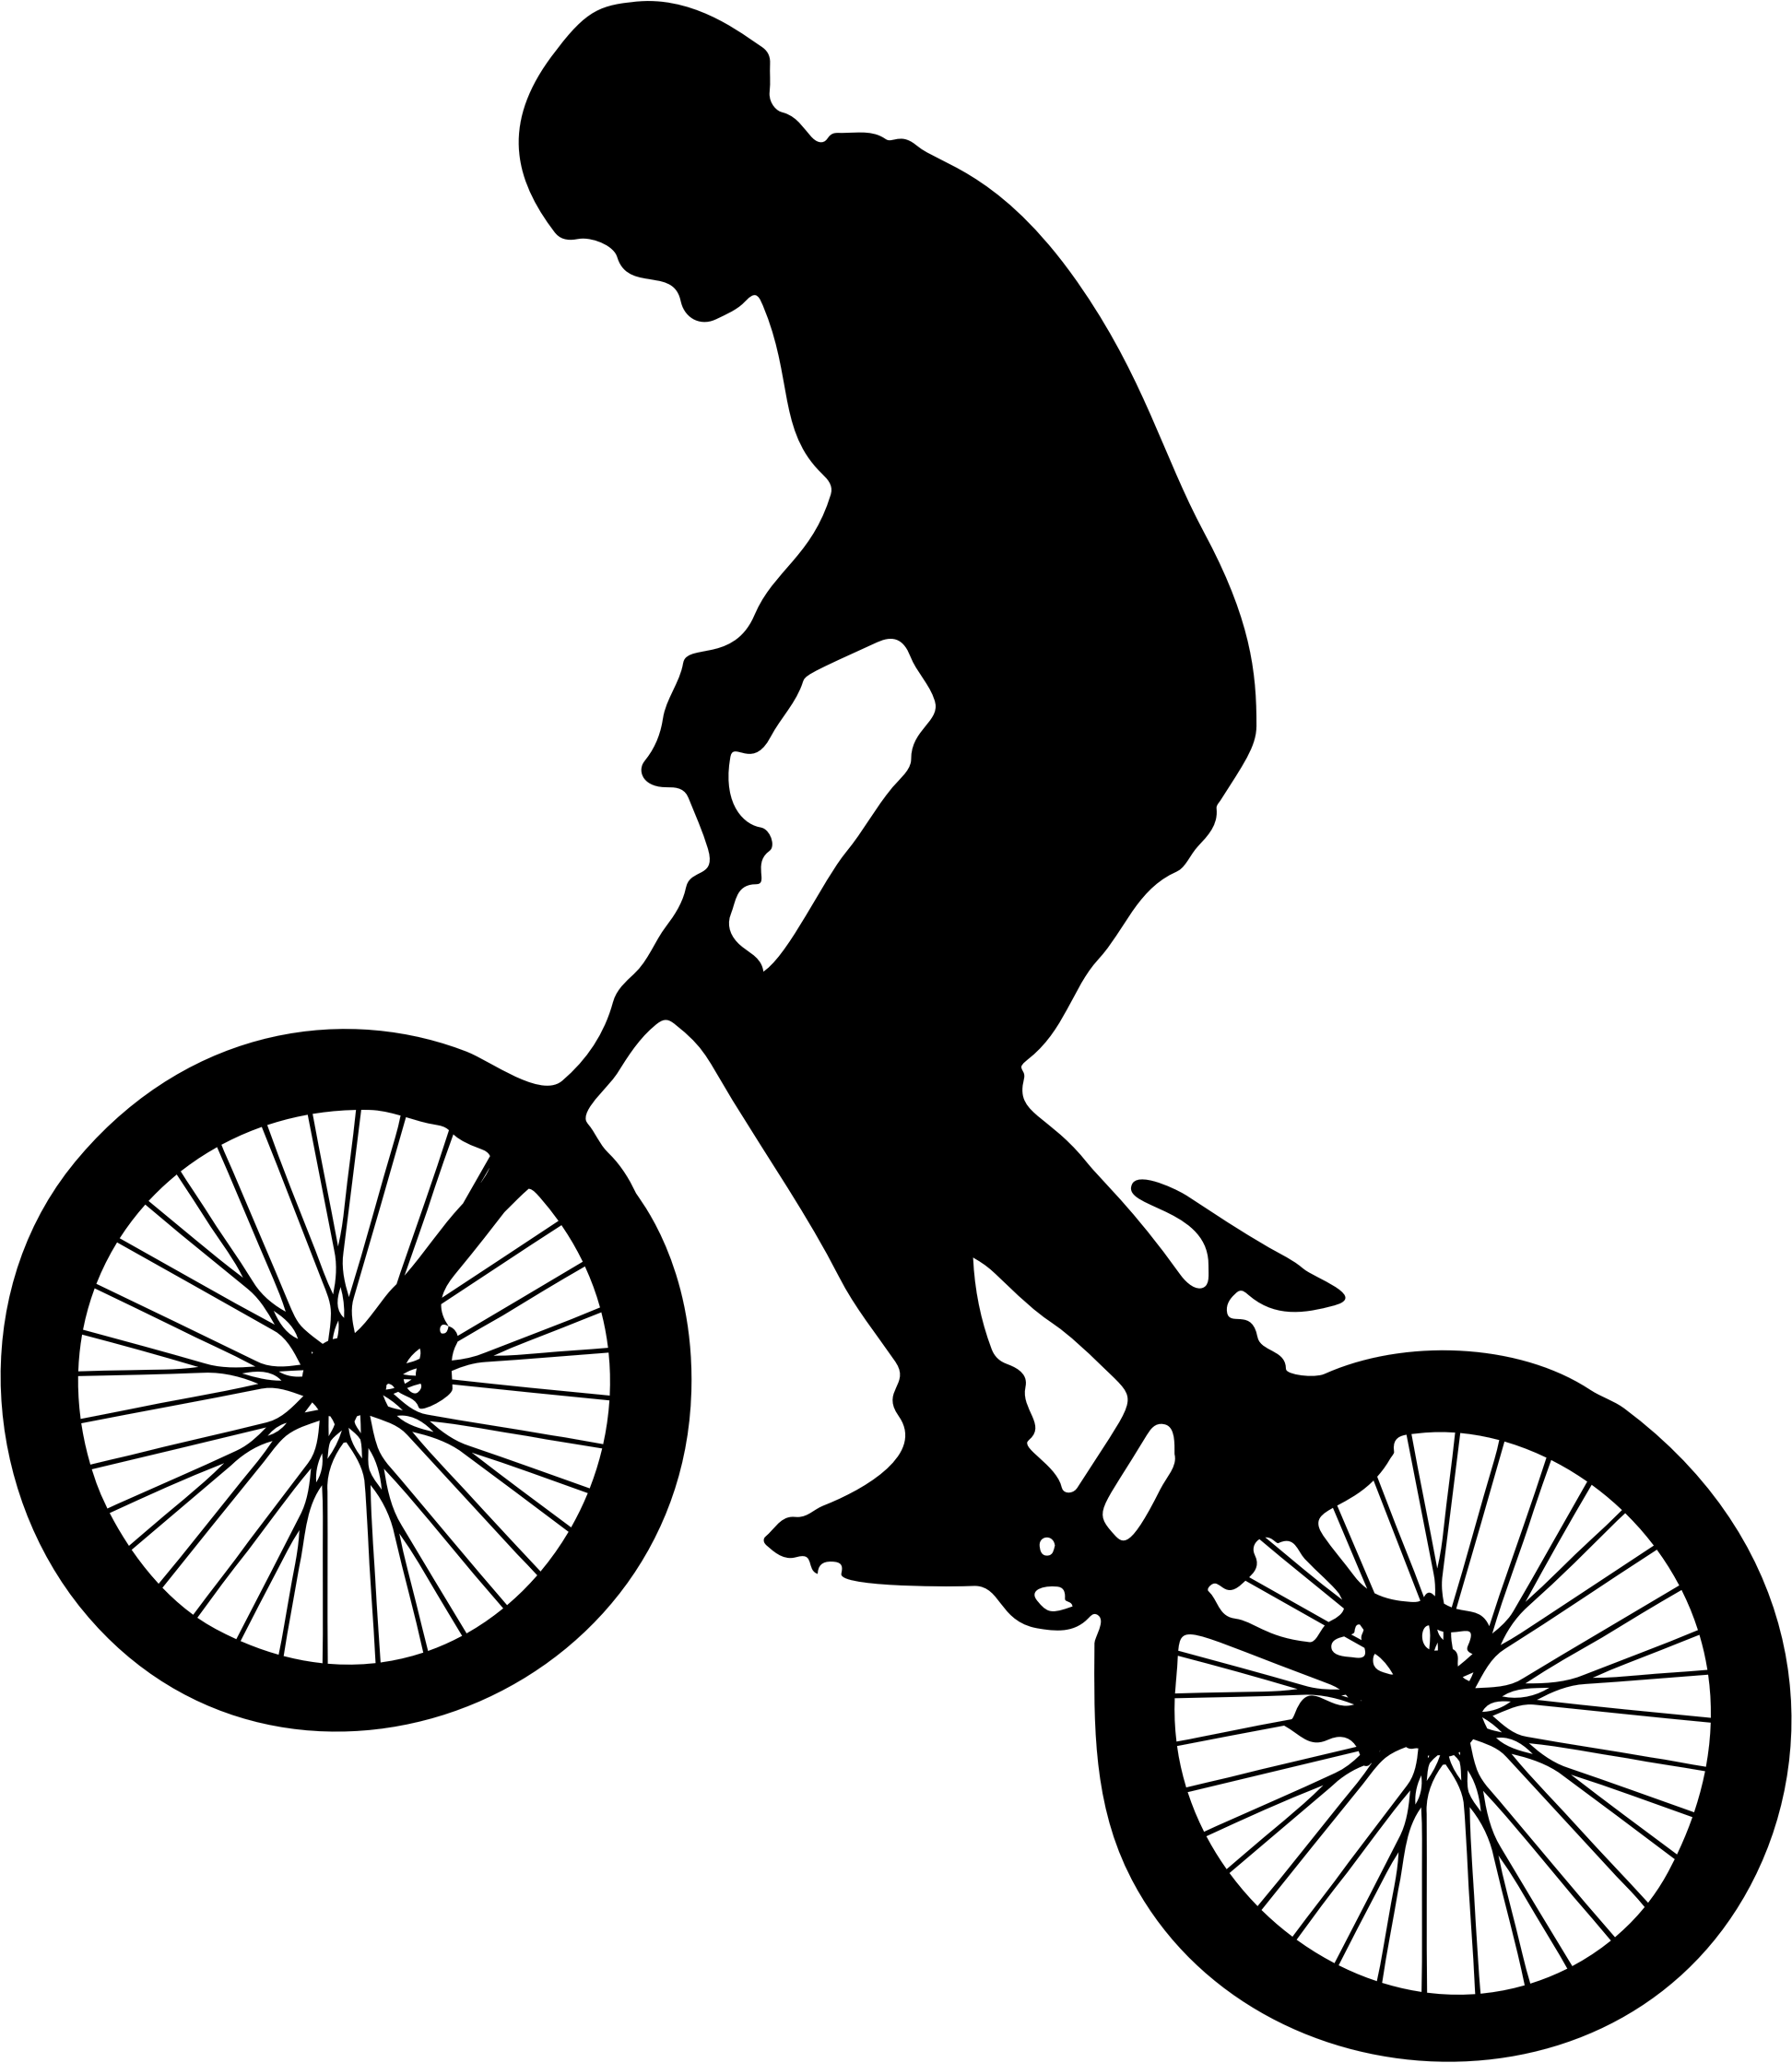 Man on bike silhouette. Cycle clipart person